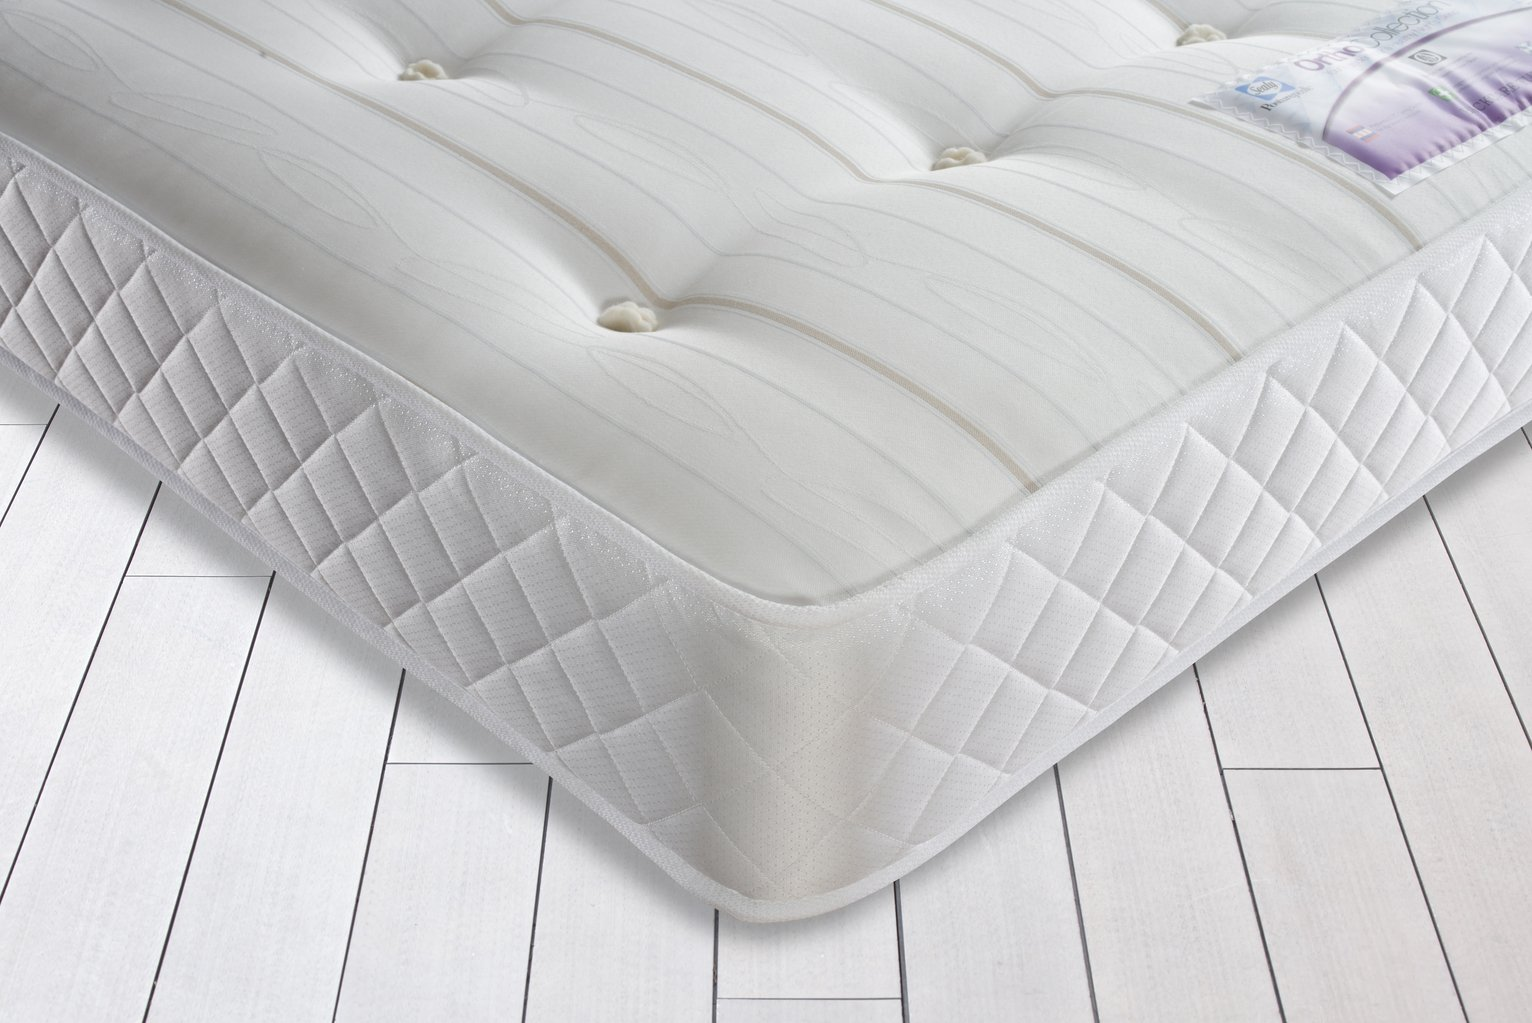 Sealy - Posturepedic Firm Ortho - Single Mattress at Argos